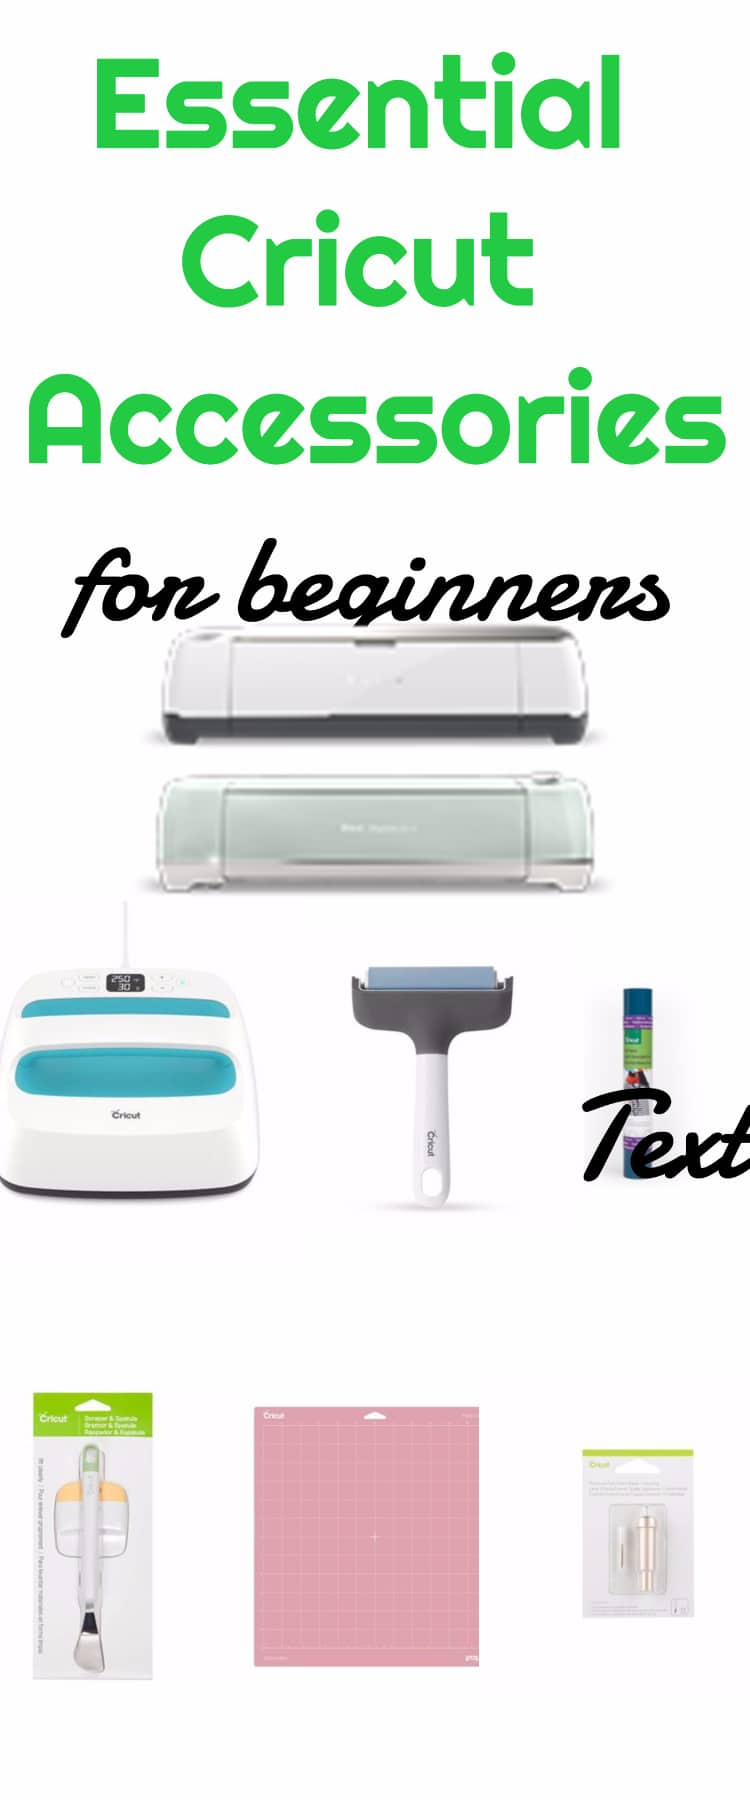 Essential Cricut Accessories for Beginners